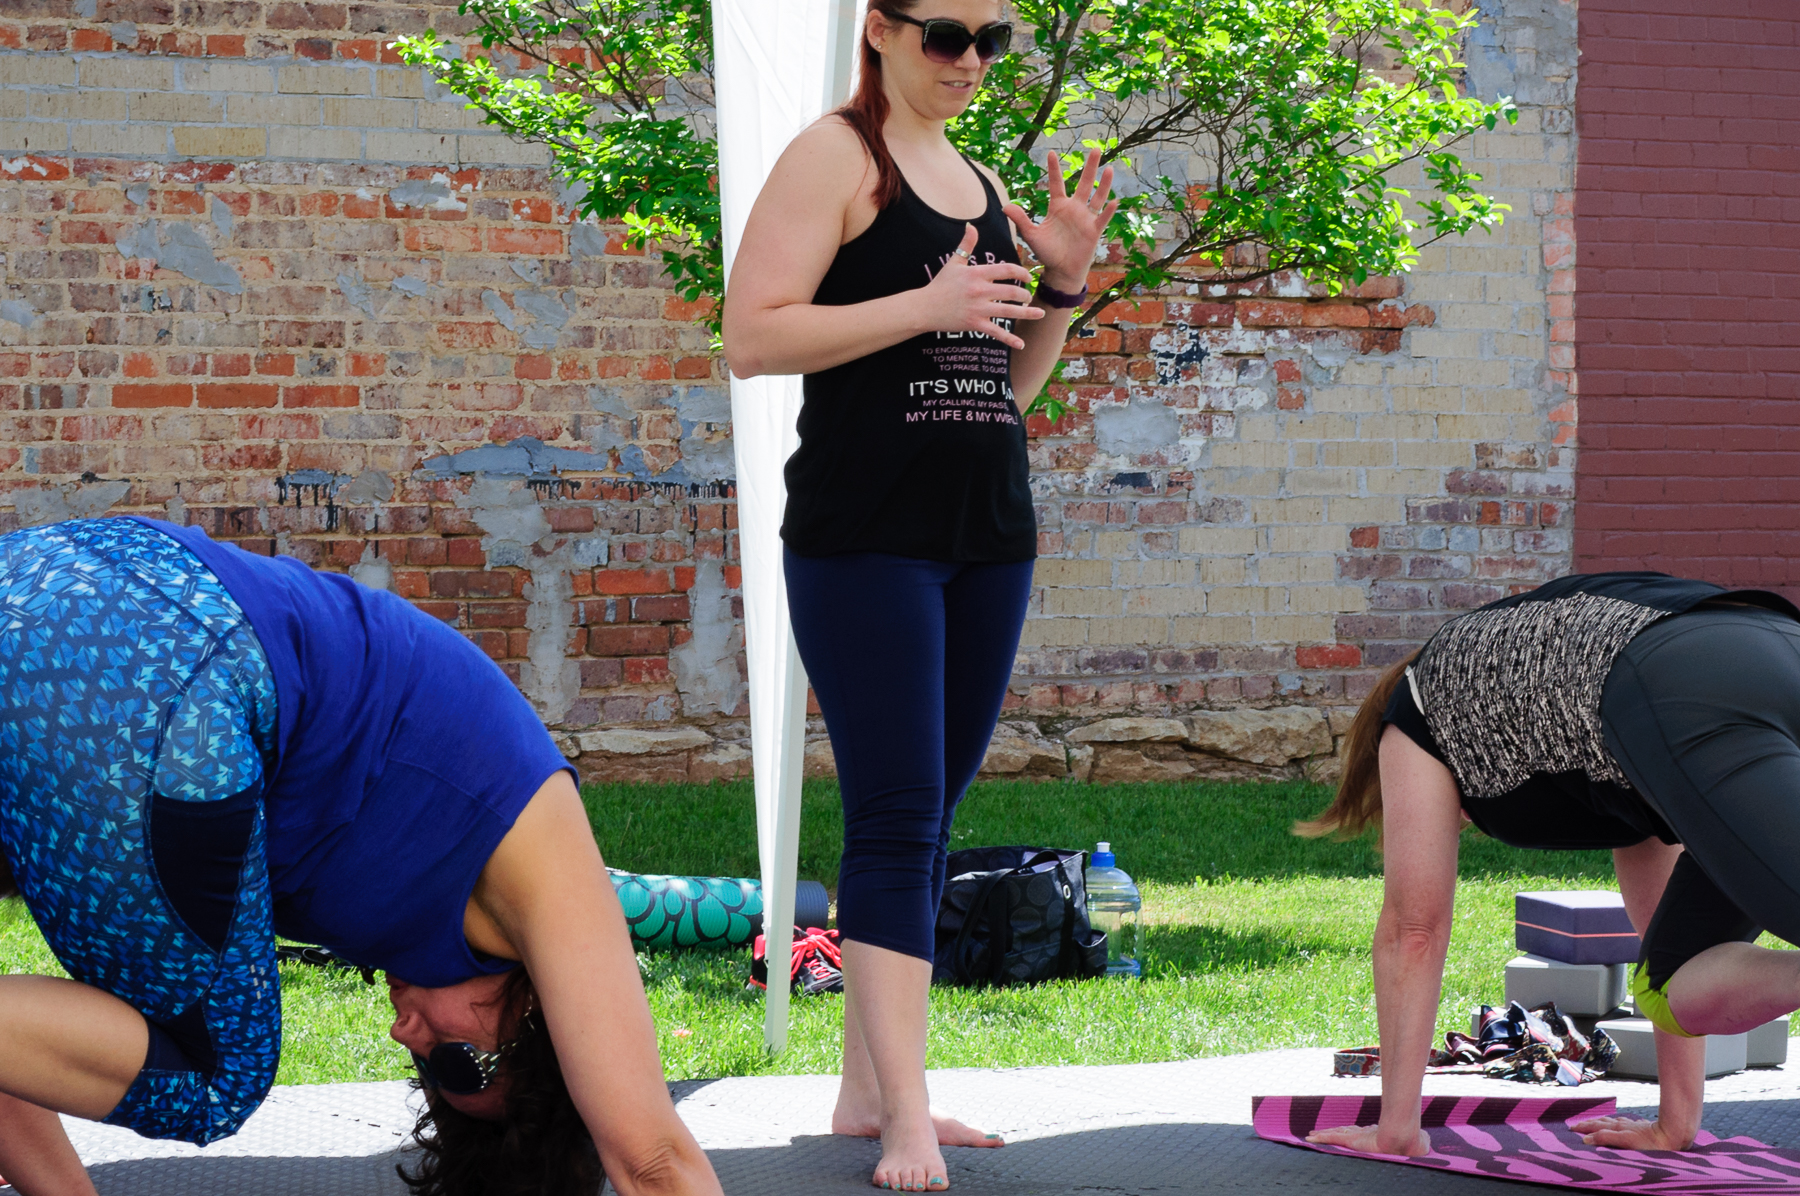 Bree, from Yoga with Bree Vandergriff teaching a Yoga class at the Pocket Park on Main Street.